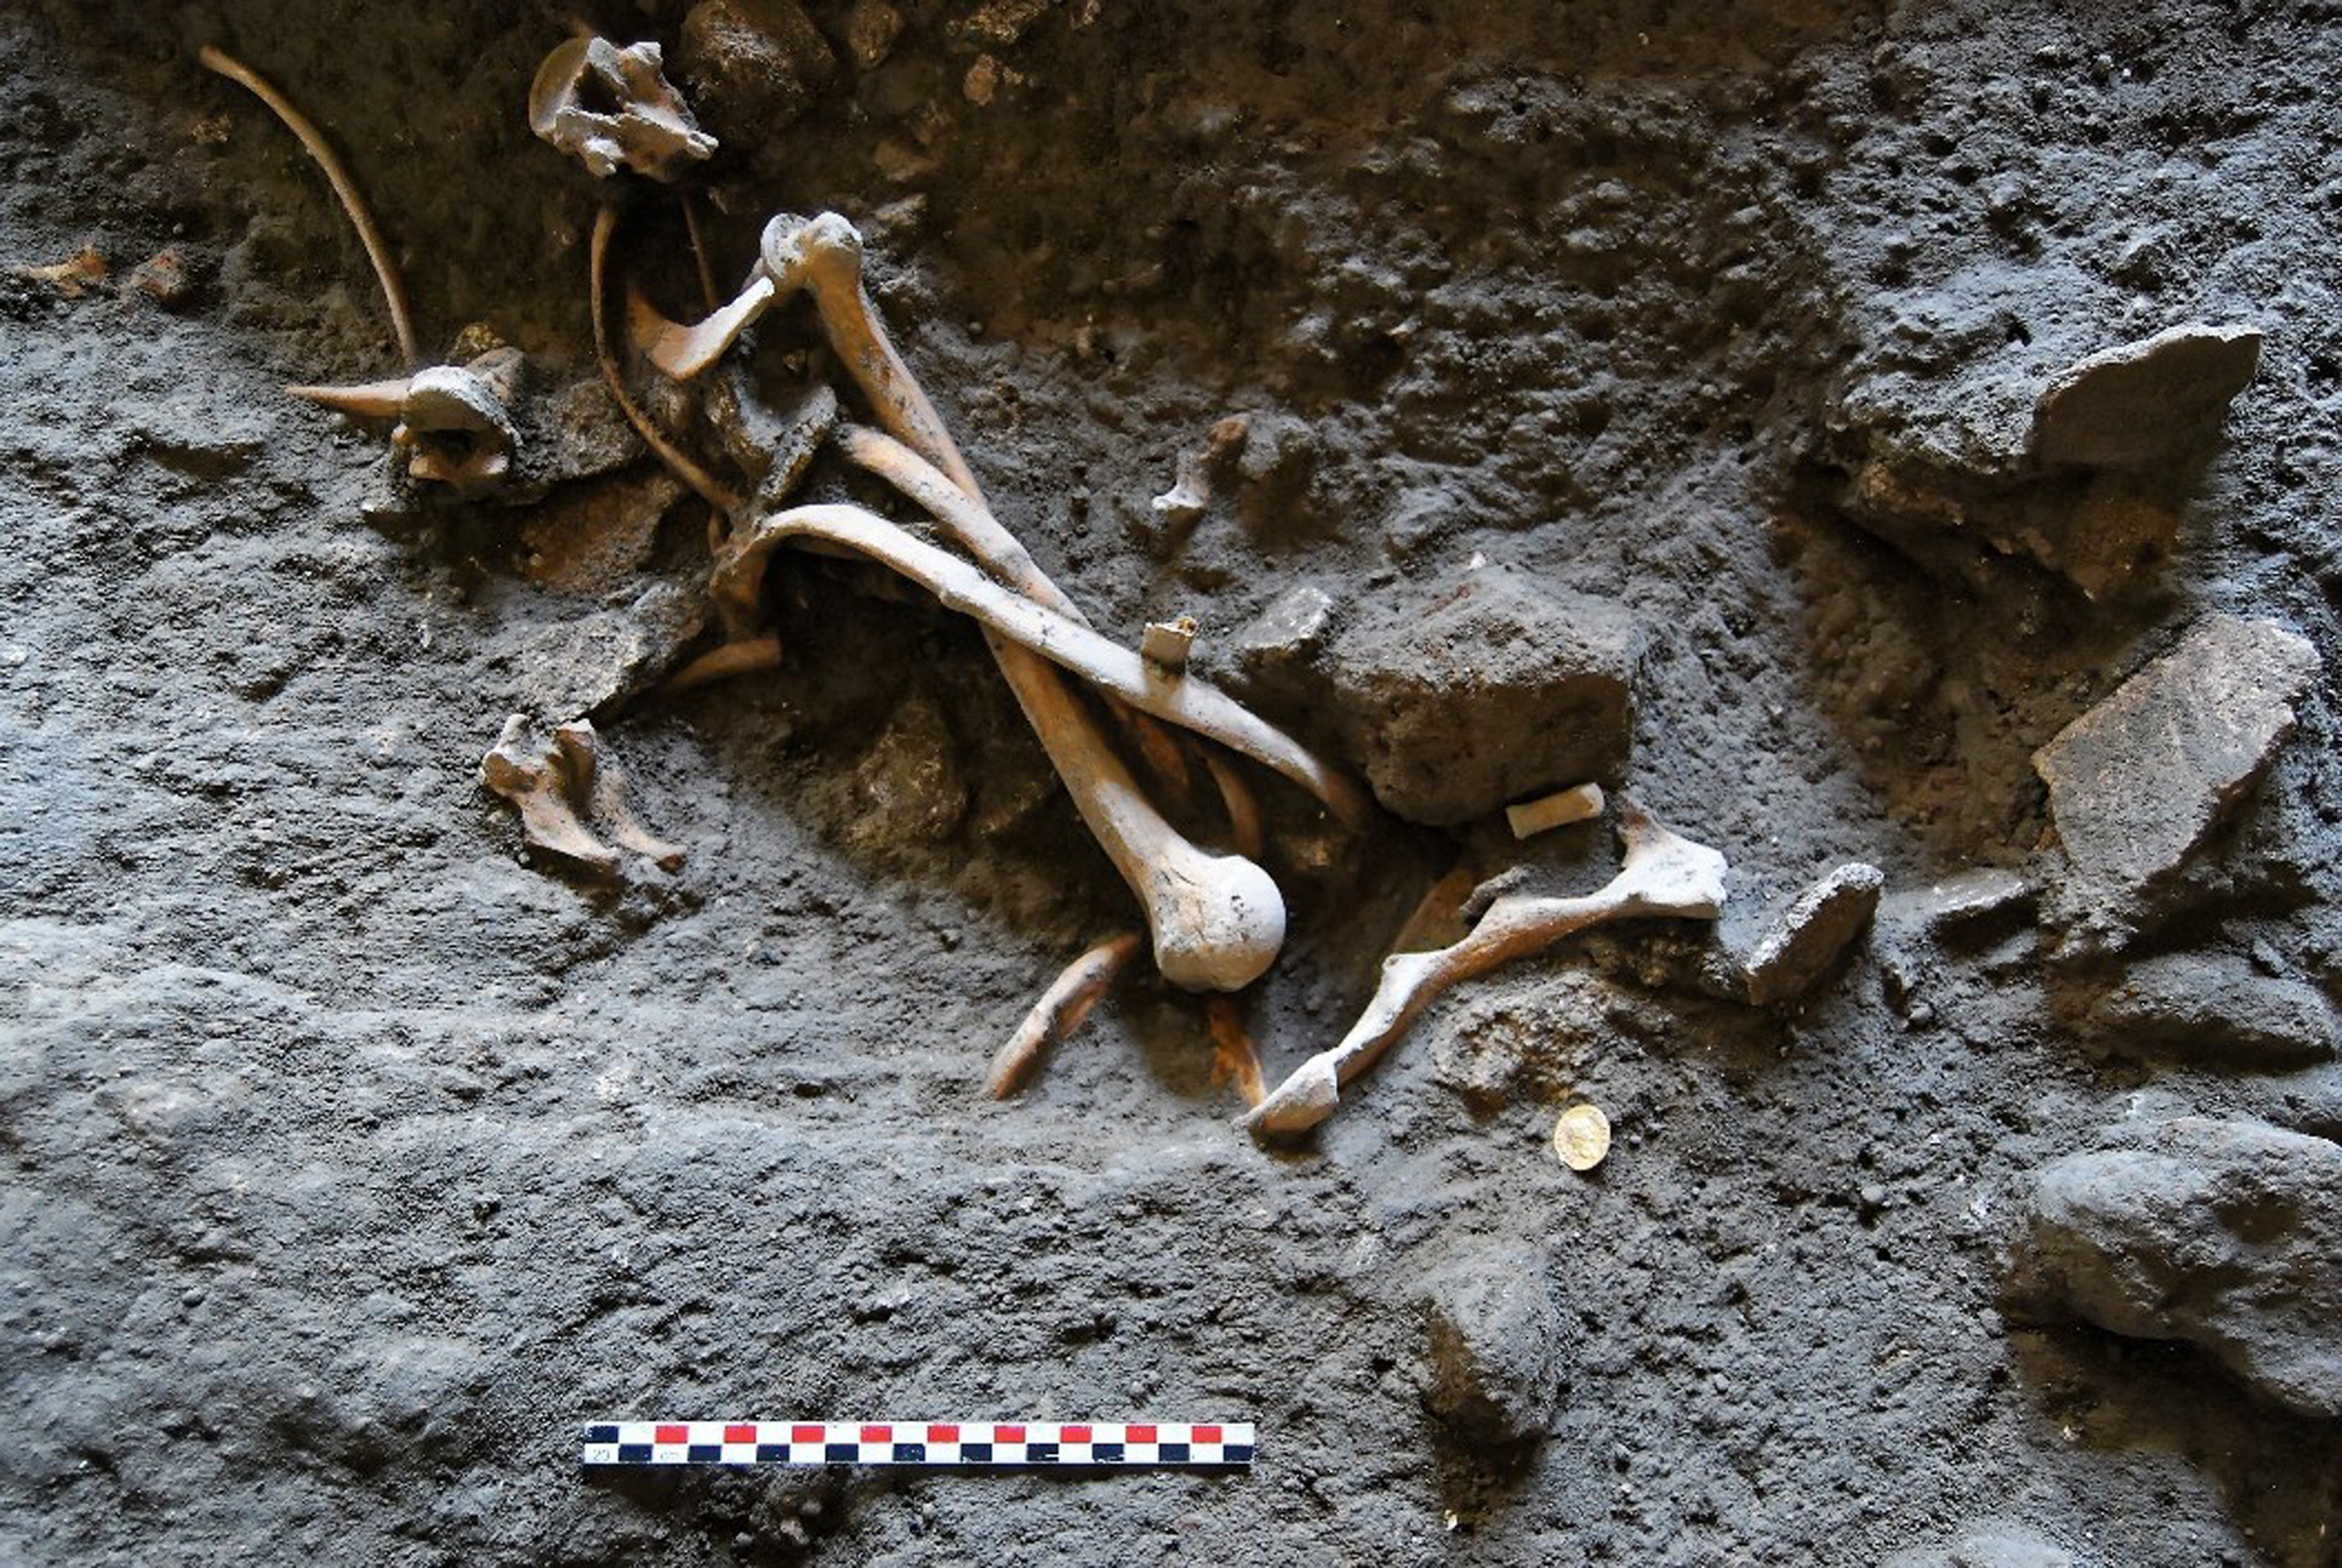 Archaeologists Discover Skeletons in Ancient, Ransacked Shop Near Pompeii